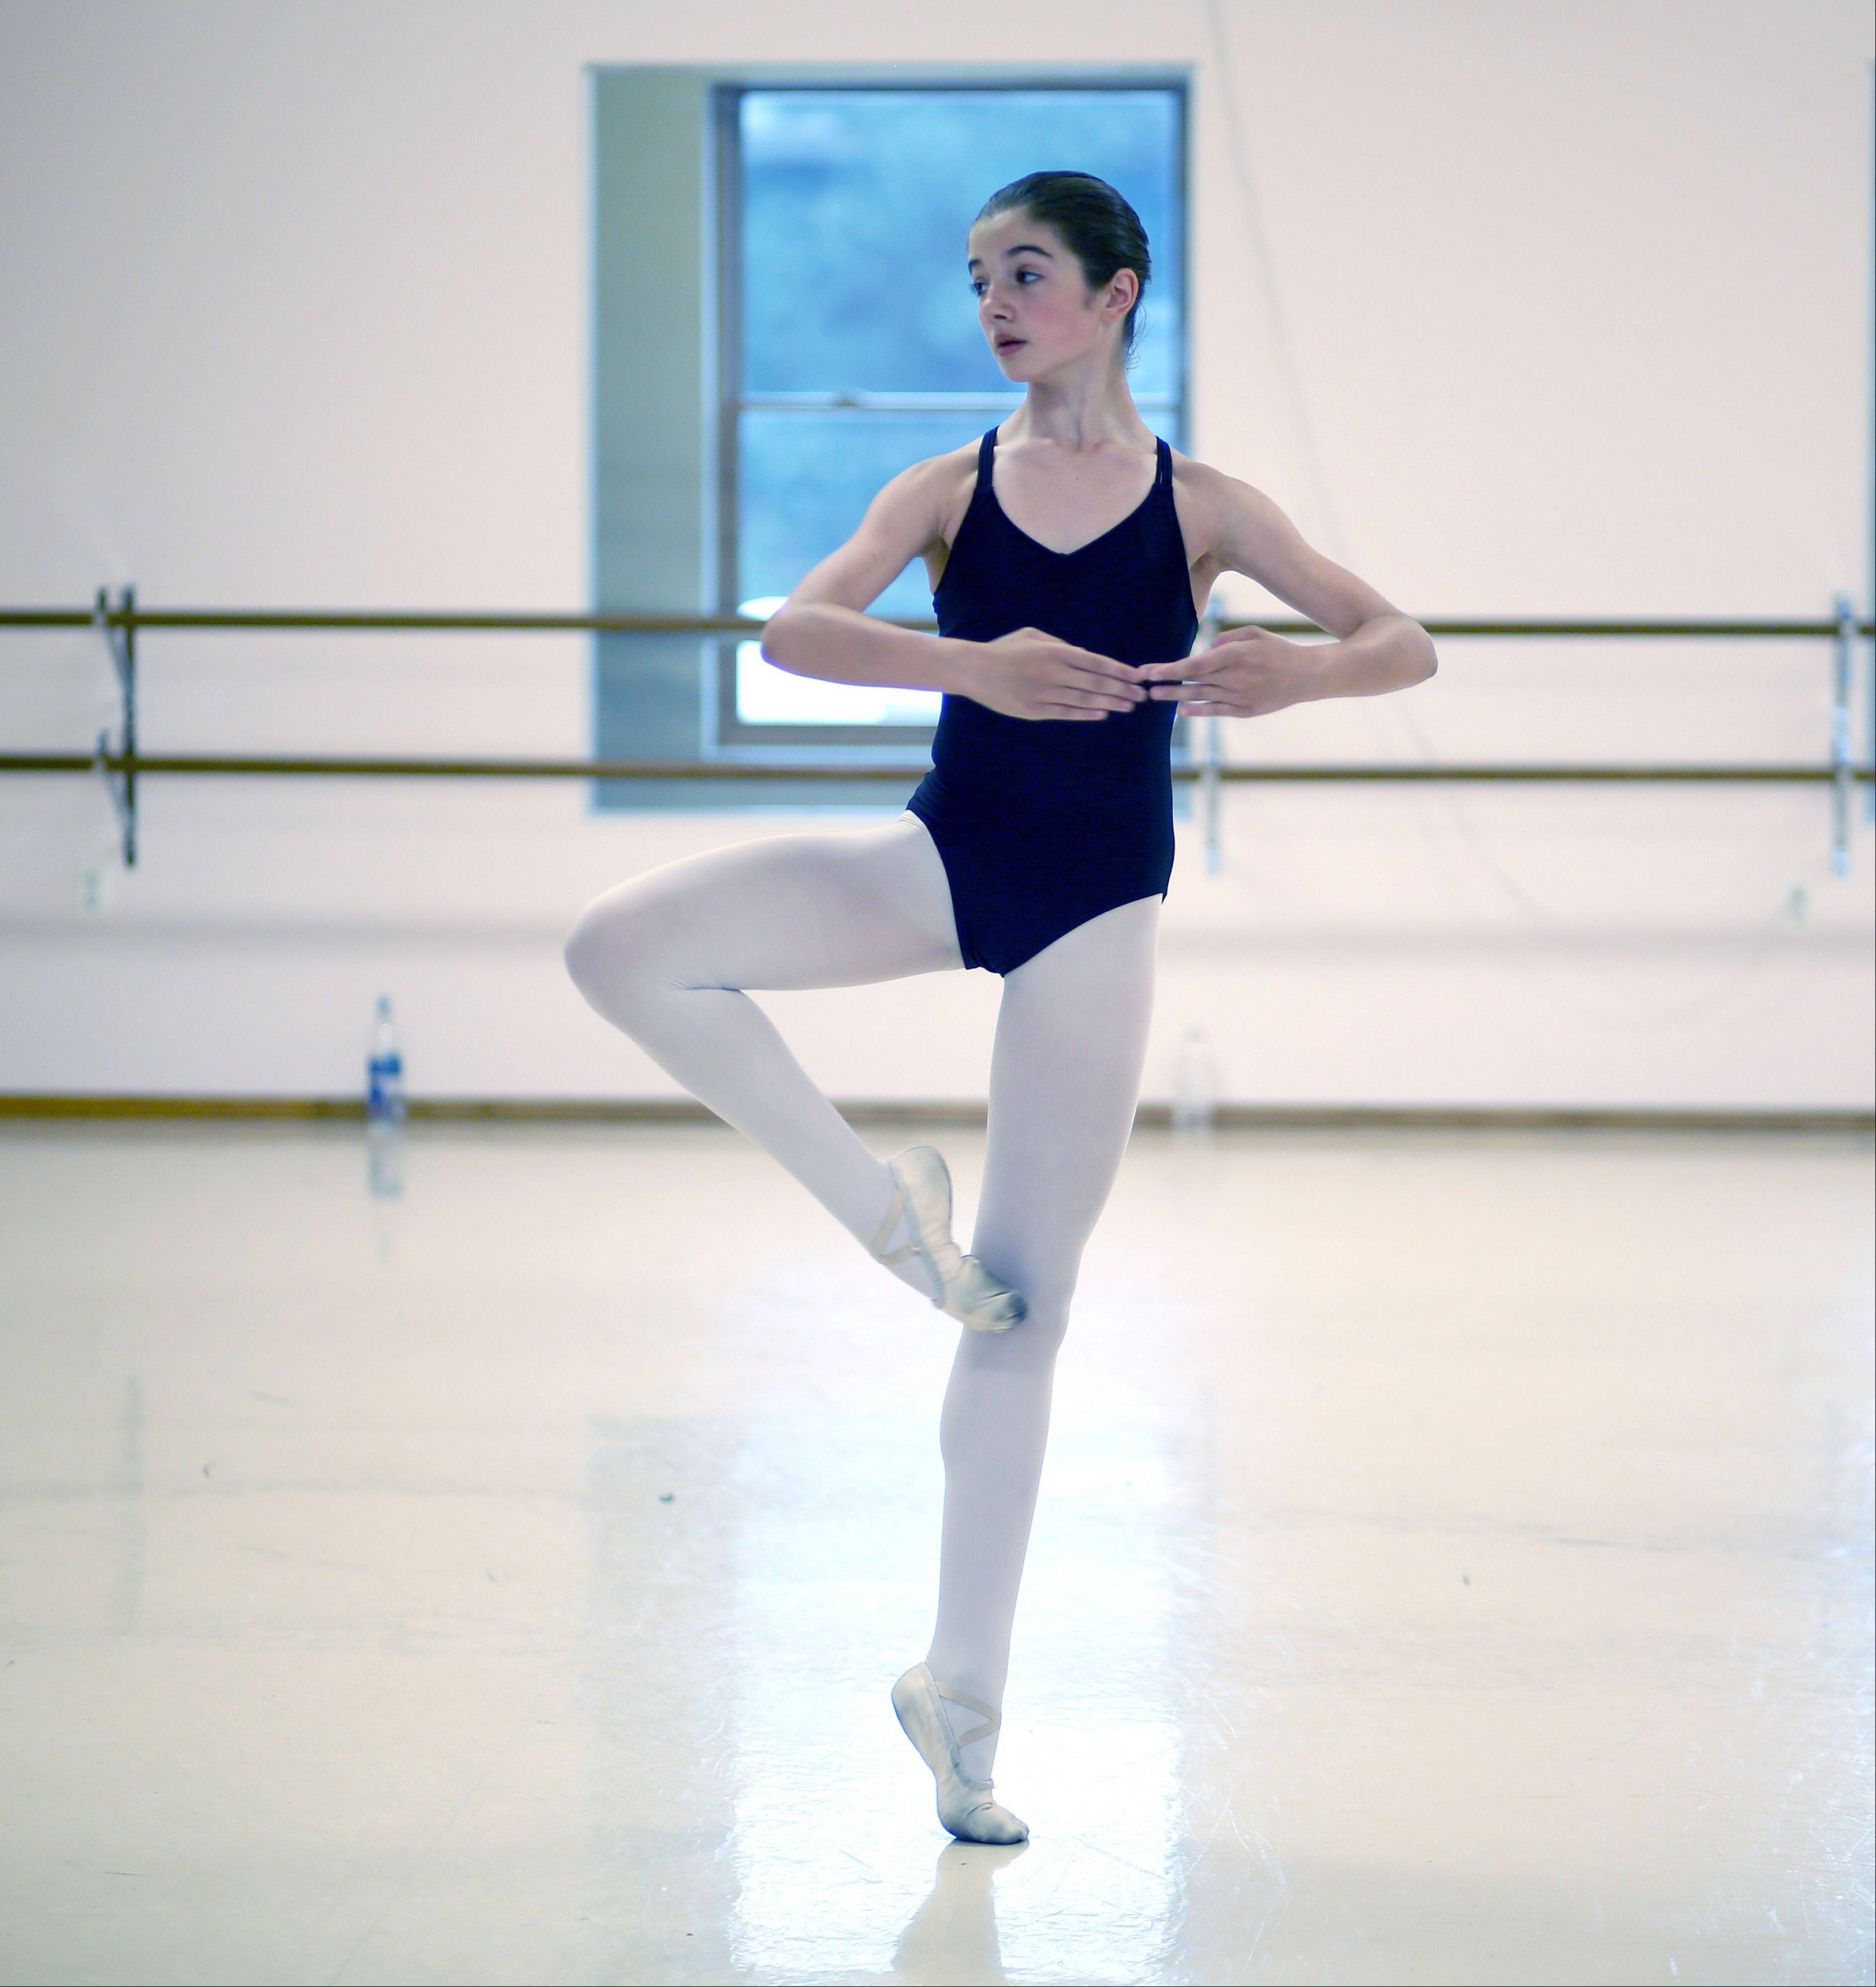 Emma Sidari, 11, of St. Charles will be attending an internship at Bolshoi Brazil this summer to study ballet.